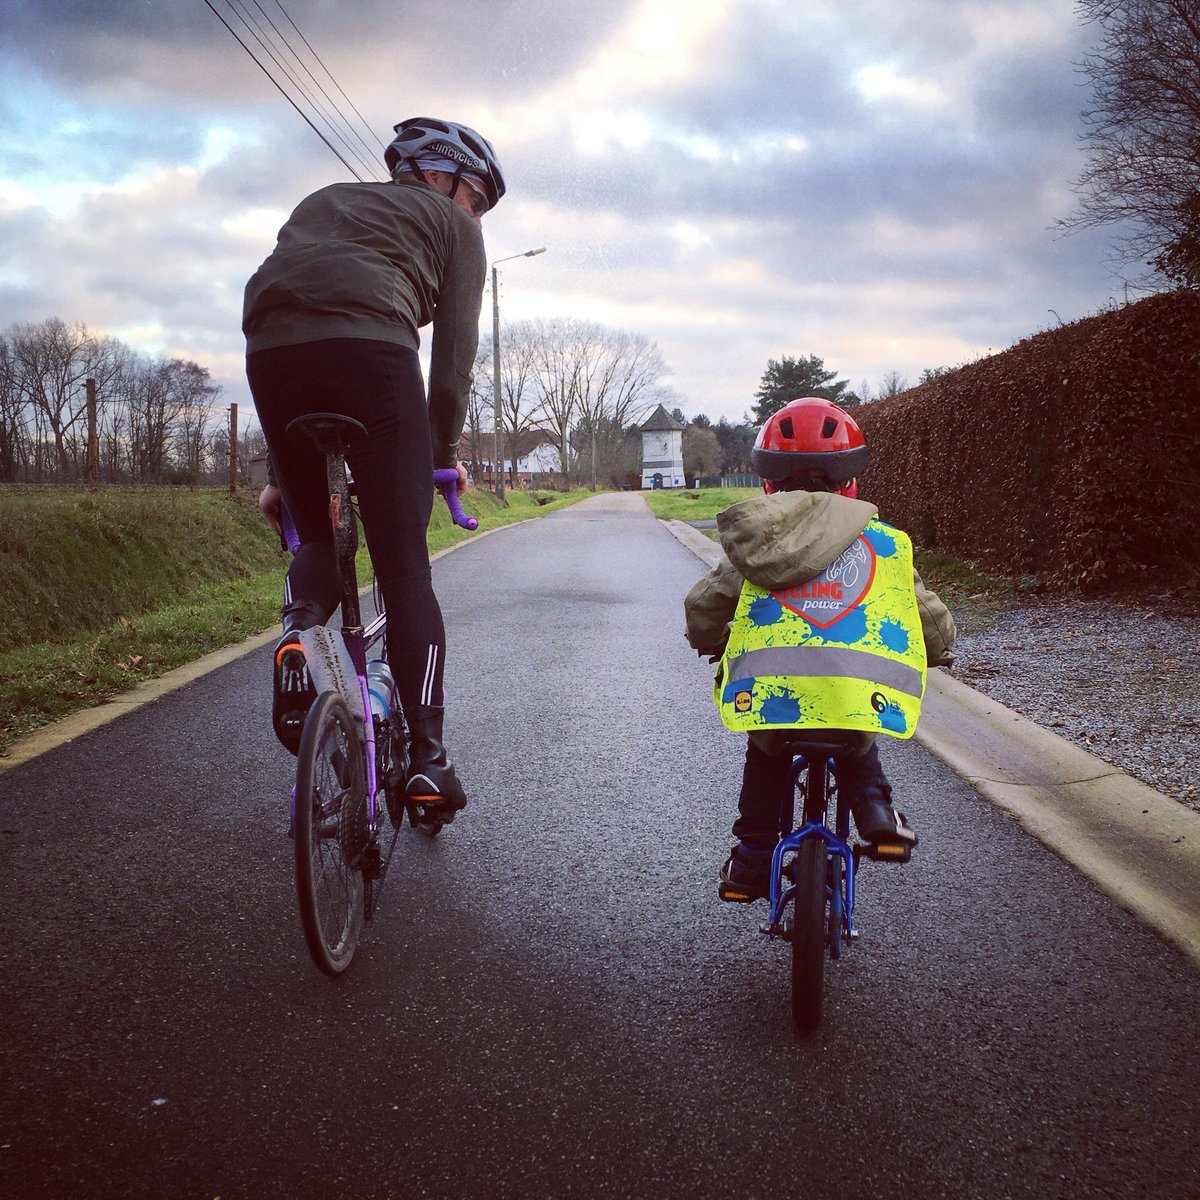 Ride together, be patient. ペダル自転車ことはじめ。気長に、気長に… #kidsonbikes #kidsbike #pedalbike #firstpedalbike #flanders #cyclinglife #cyclinglove #451wheel #racebike #roadcycling #minivelo #smallwheels #ロードバイク #ディスクロード #小径車 #ミニベロ #ミニベロロードpic.twitter.com/eIPtp0IFUd